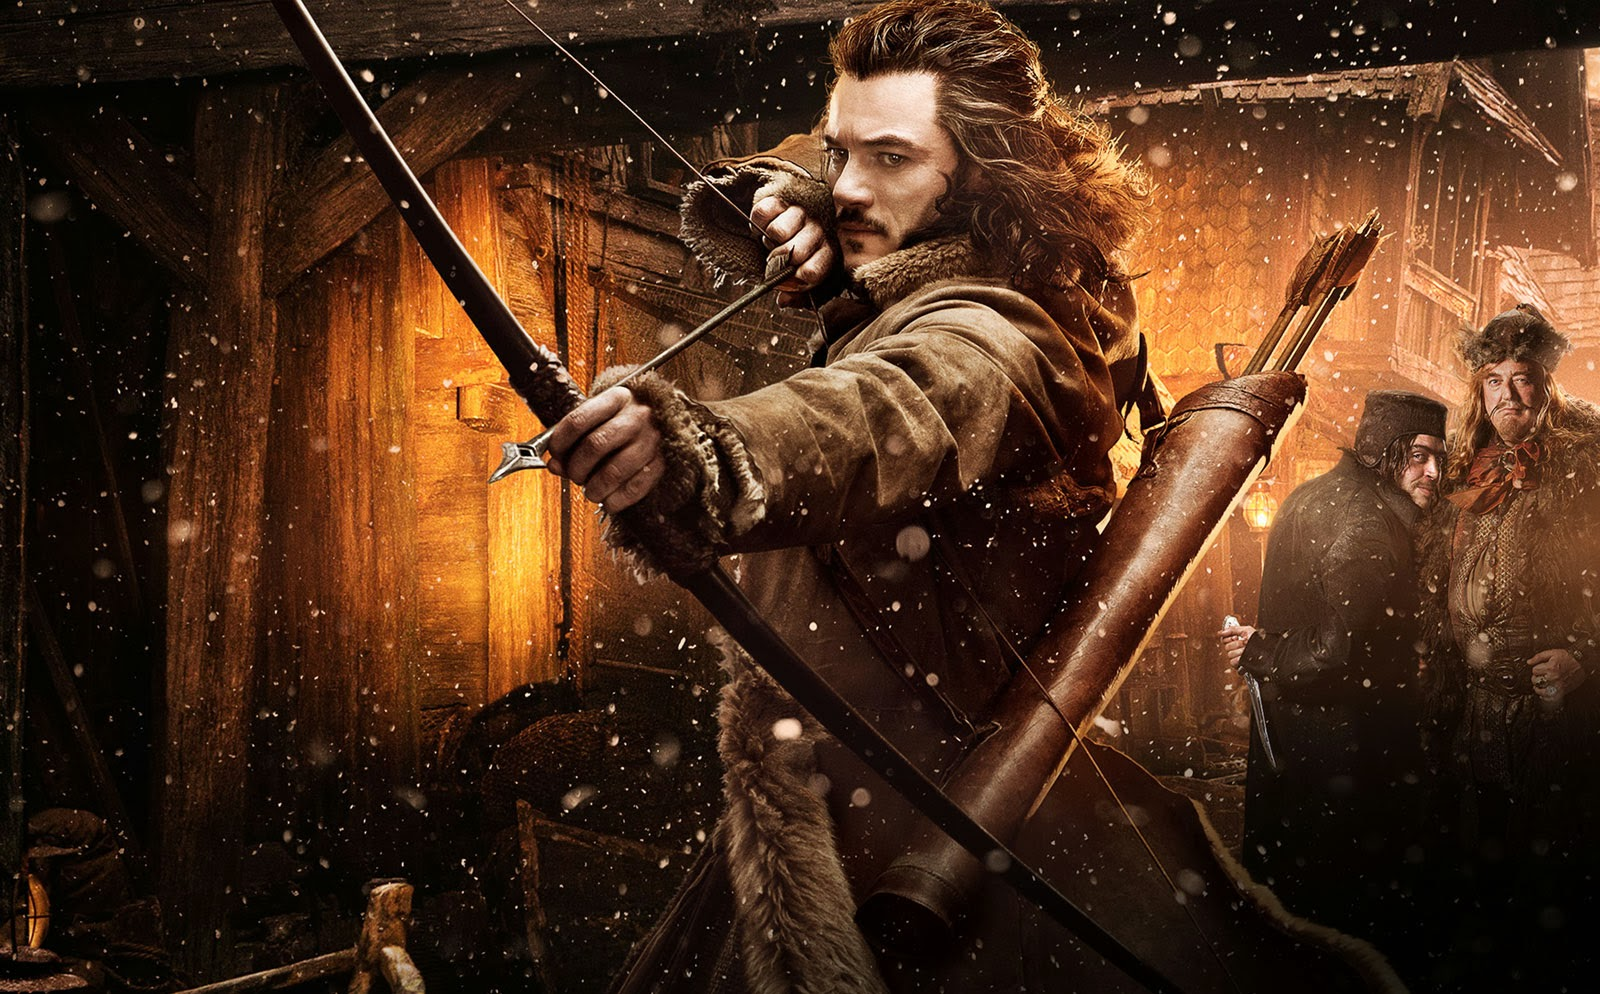 Bard The Bowman Hobbit Desolation Of Smaug Wallpaper 1600x944px